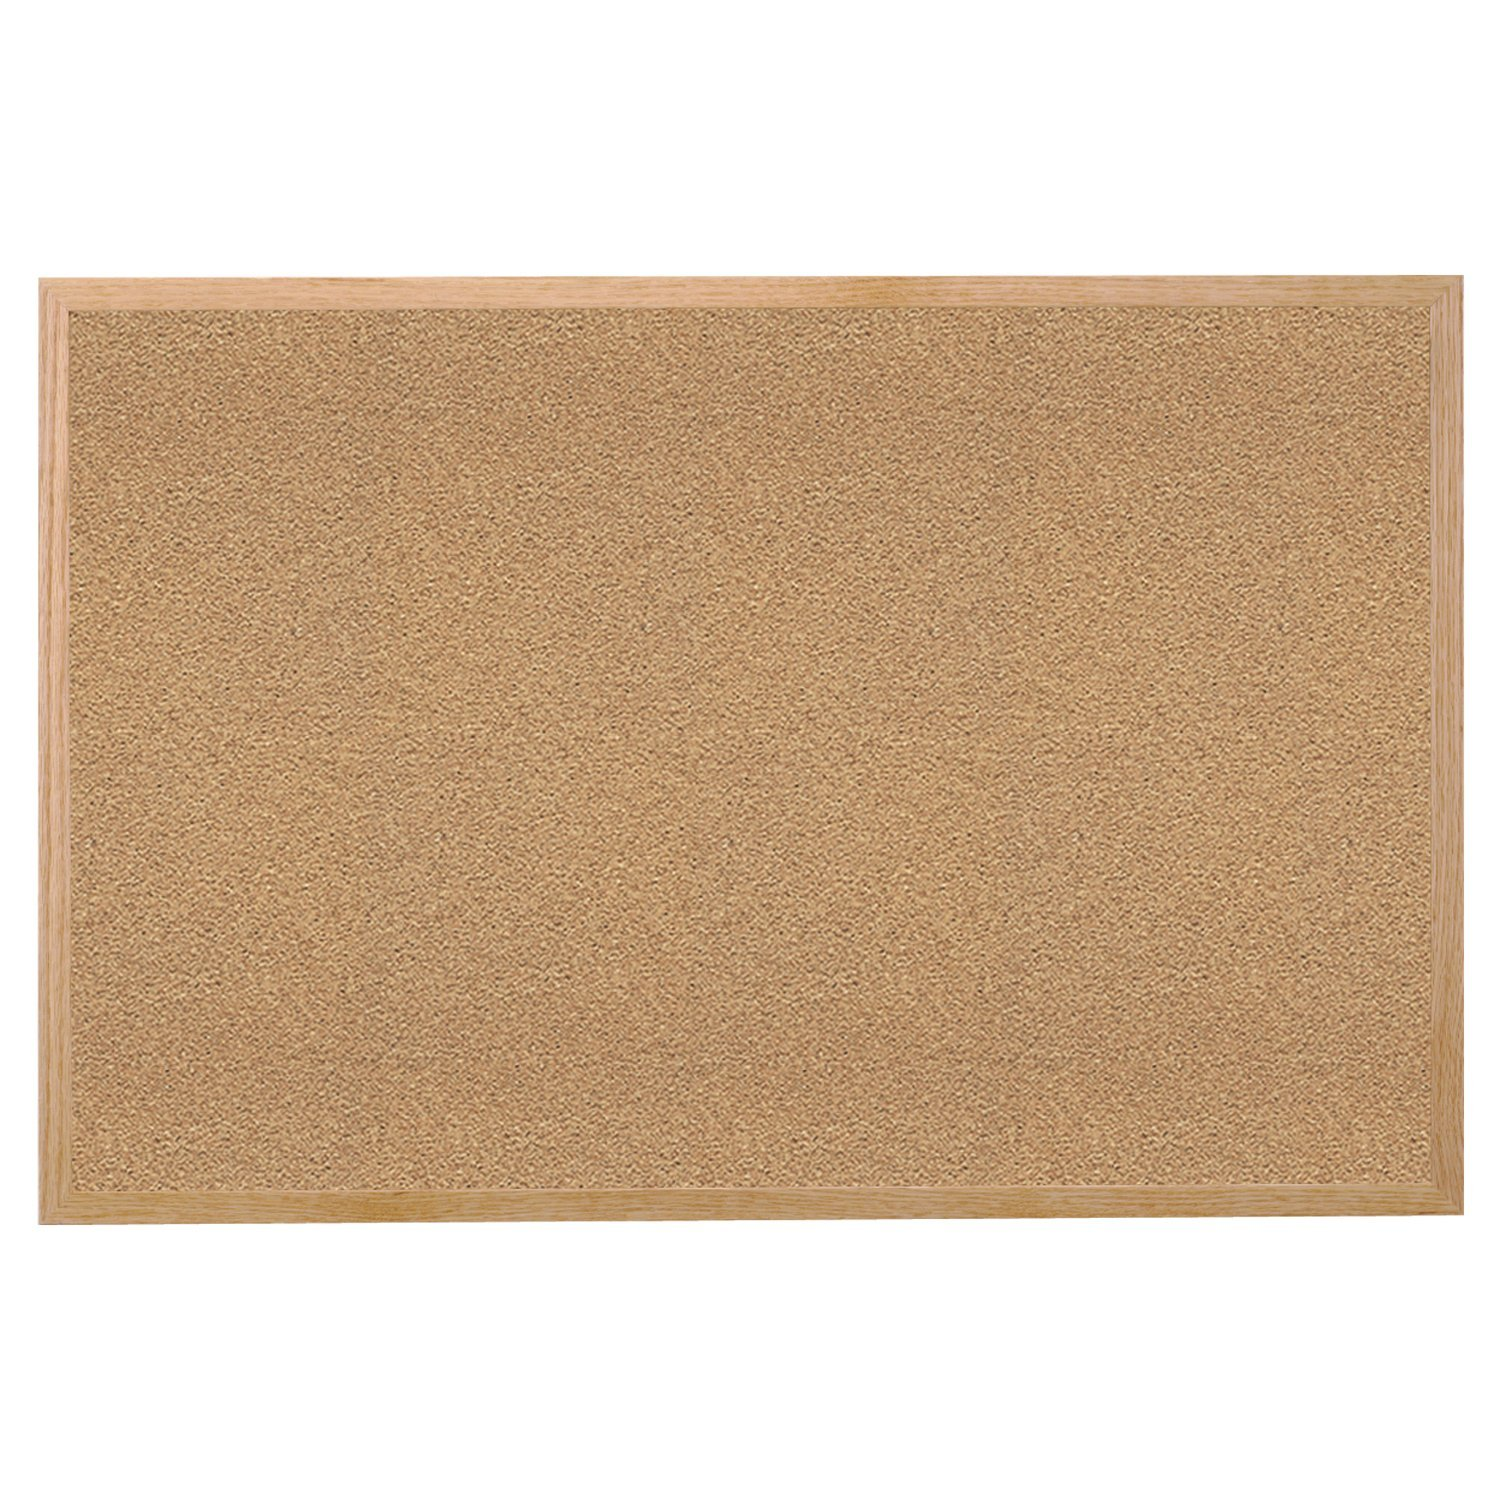 """24.0"""" x 36.0"""" Wood Frame Natural Cork Bulletin Board, Made in the USA, BOARD Beautiful Cherry Aluminum 36x60 Black Strong Made MWDB2436ECR inches.., By Ghent"""